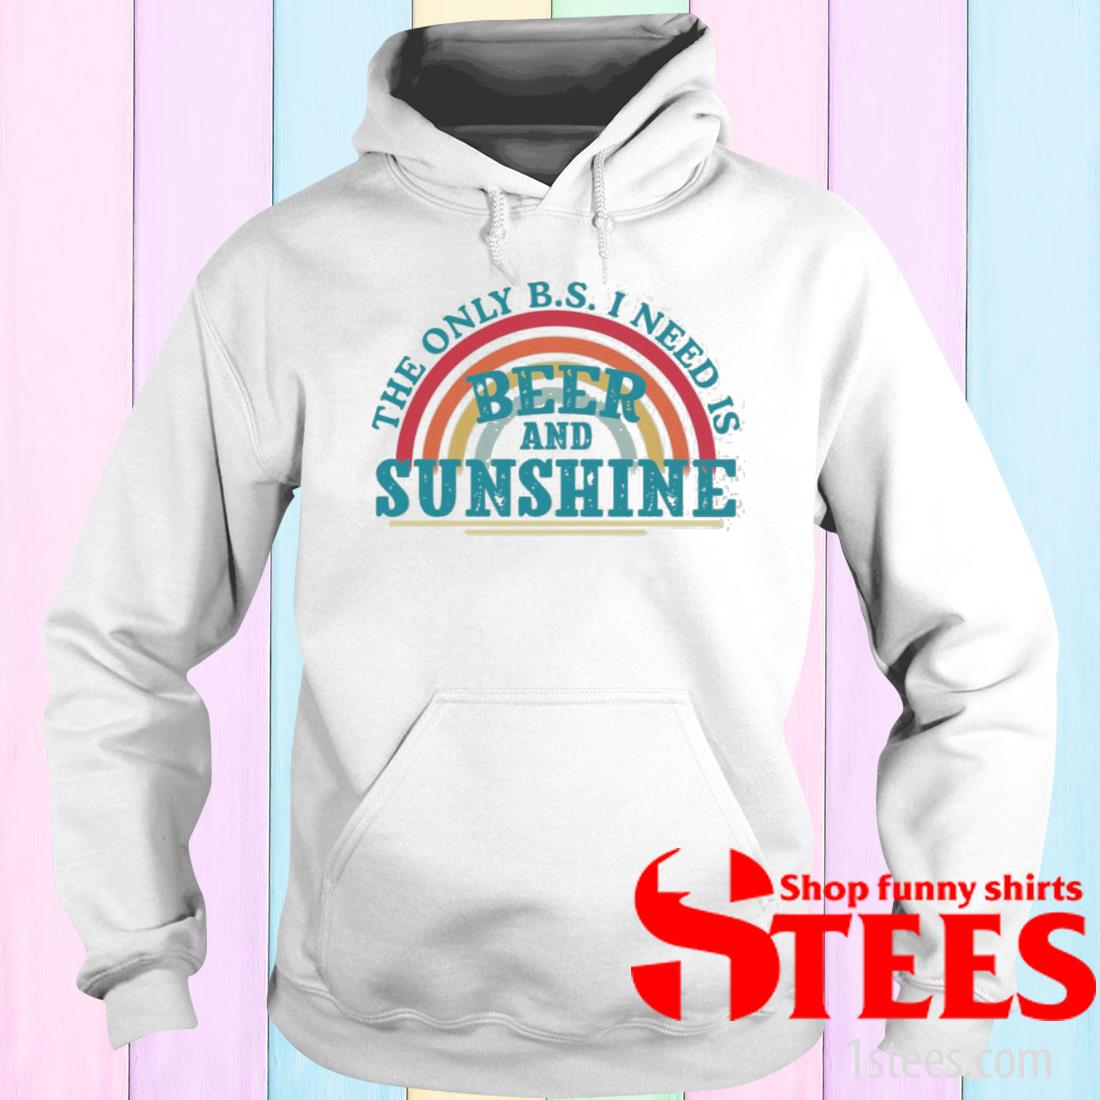 The Only Bs I Need Is Beer And Sunshine Shirt hoodie